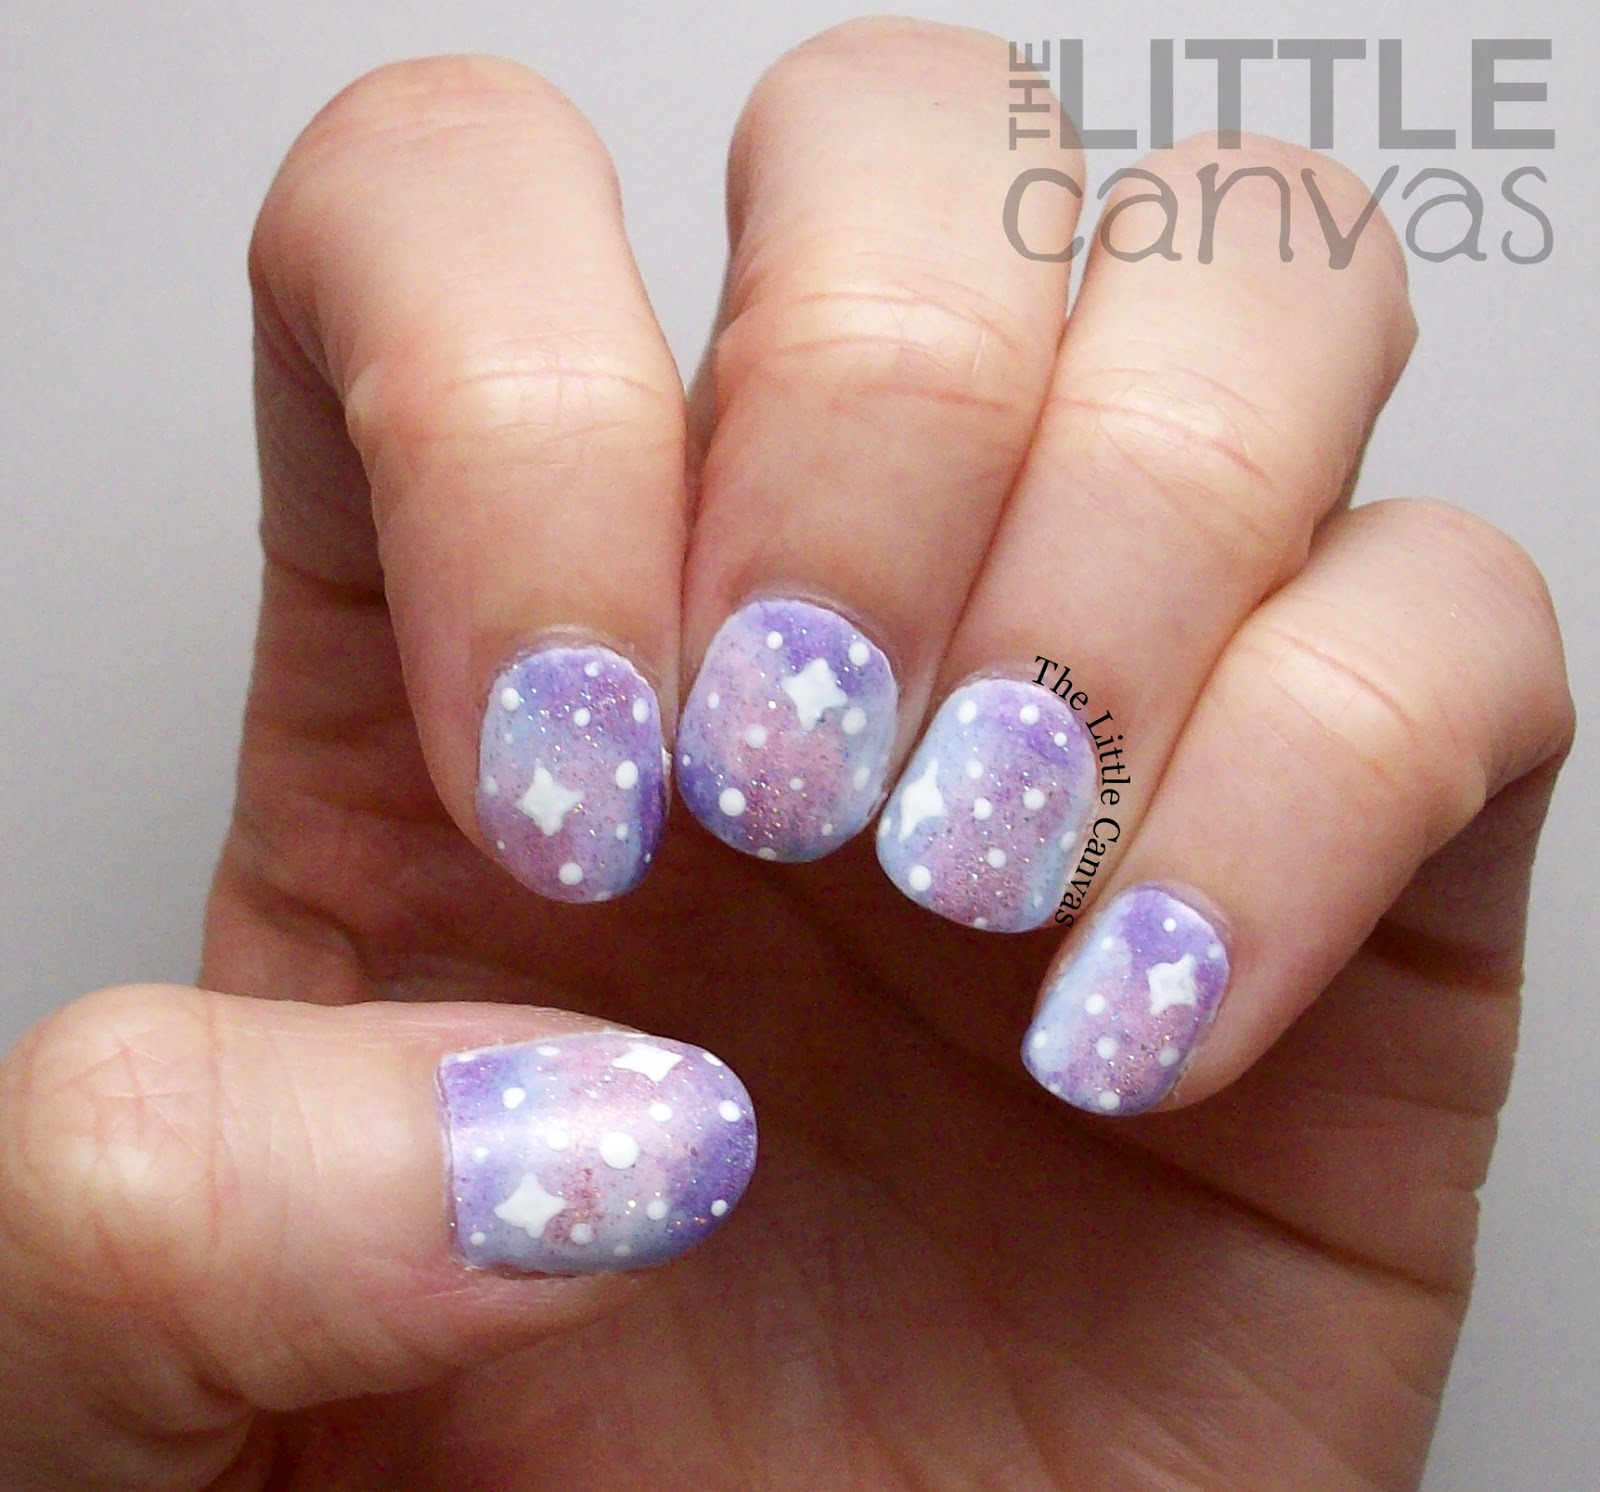 Pastel-ish Galaxy Nails - The Little Canvas